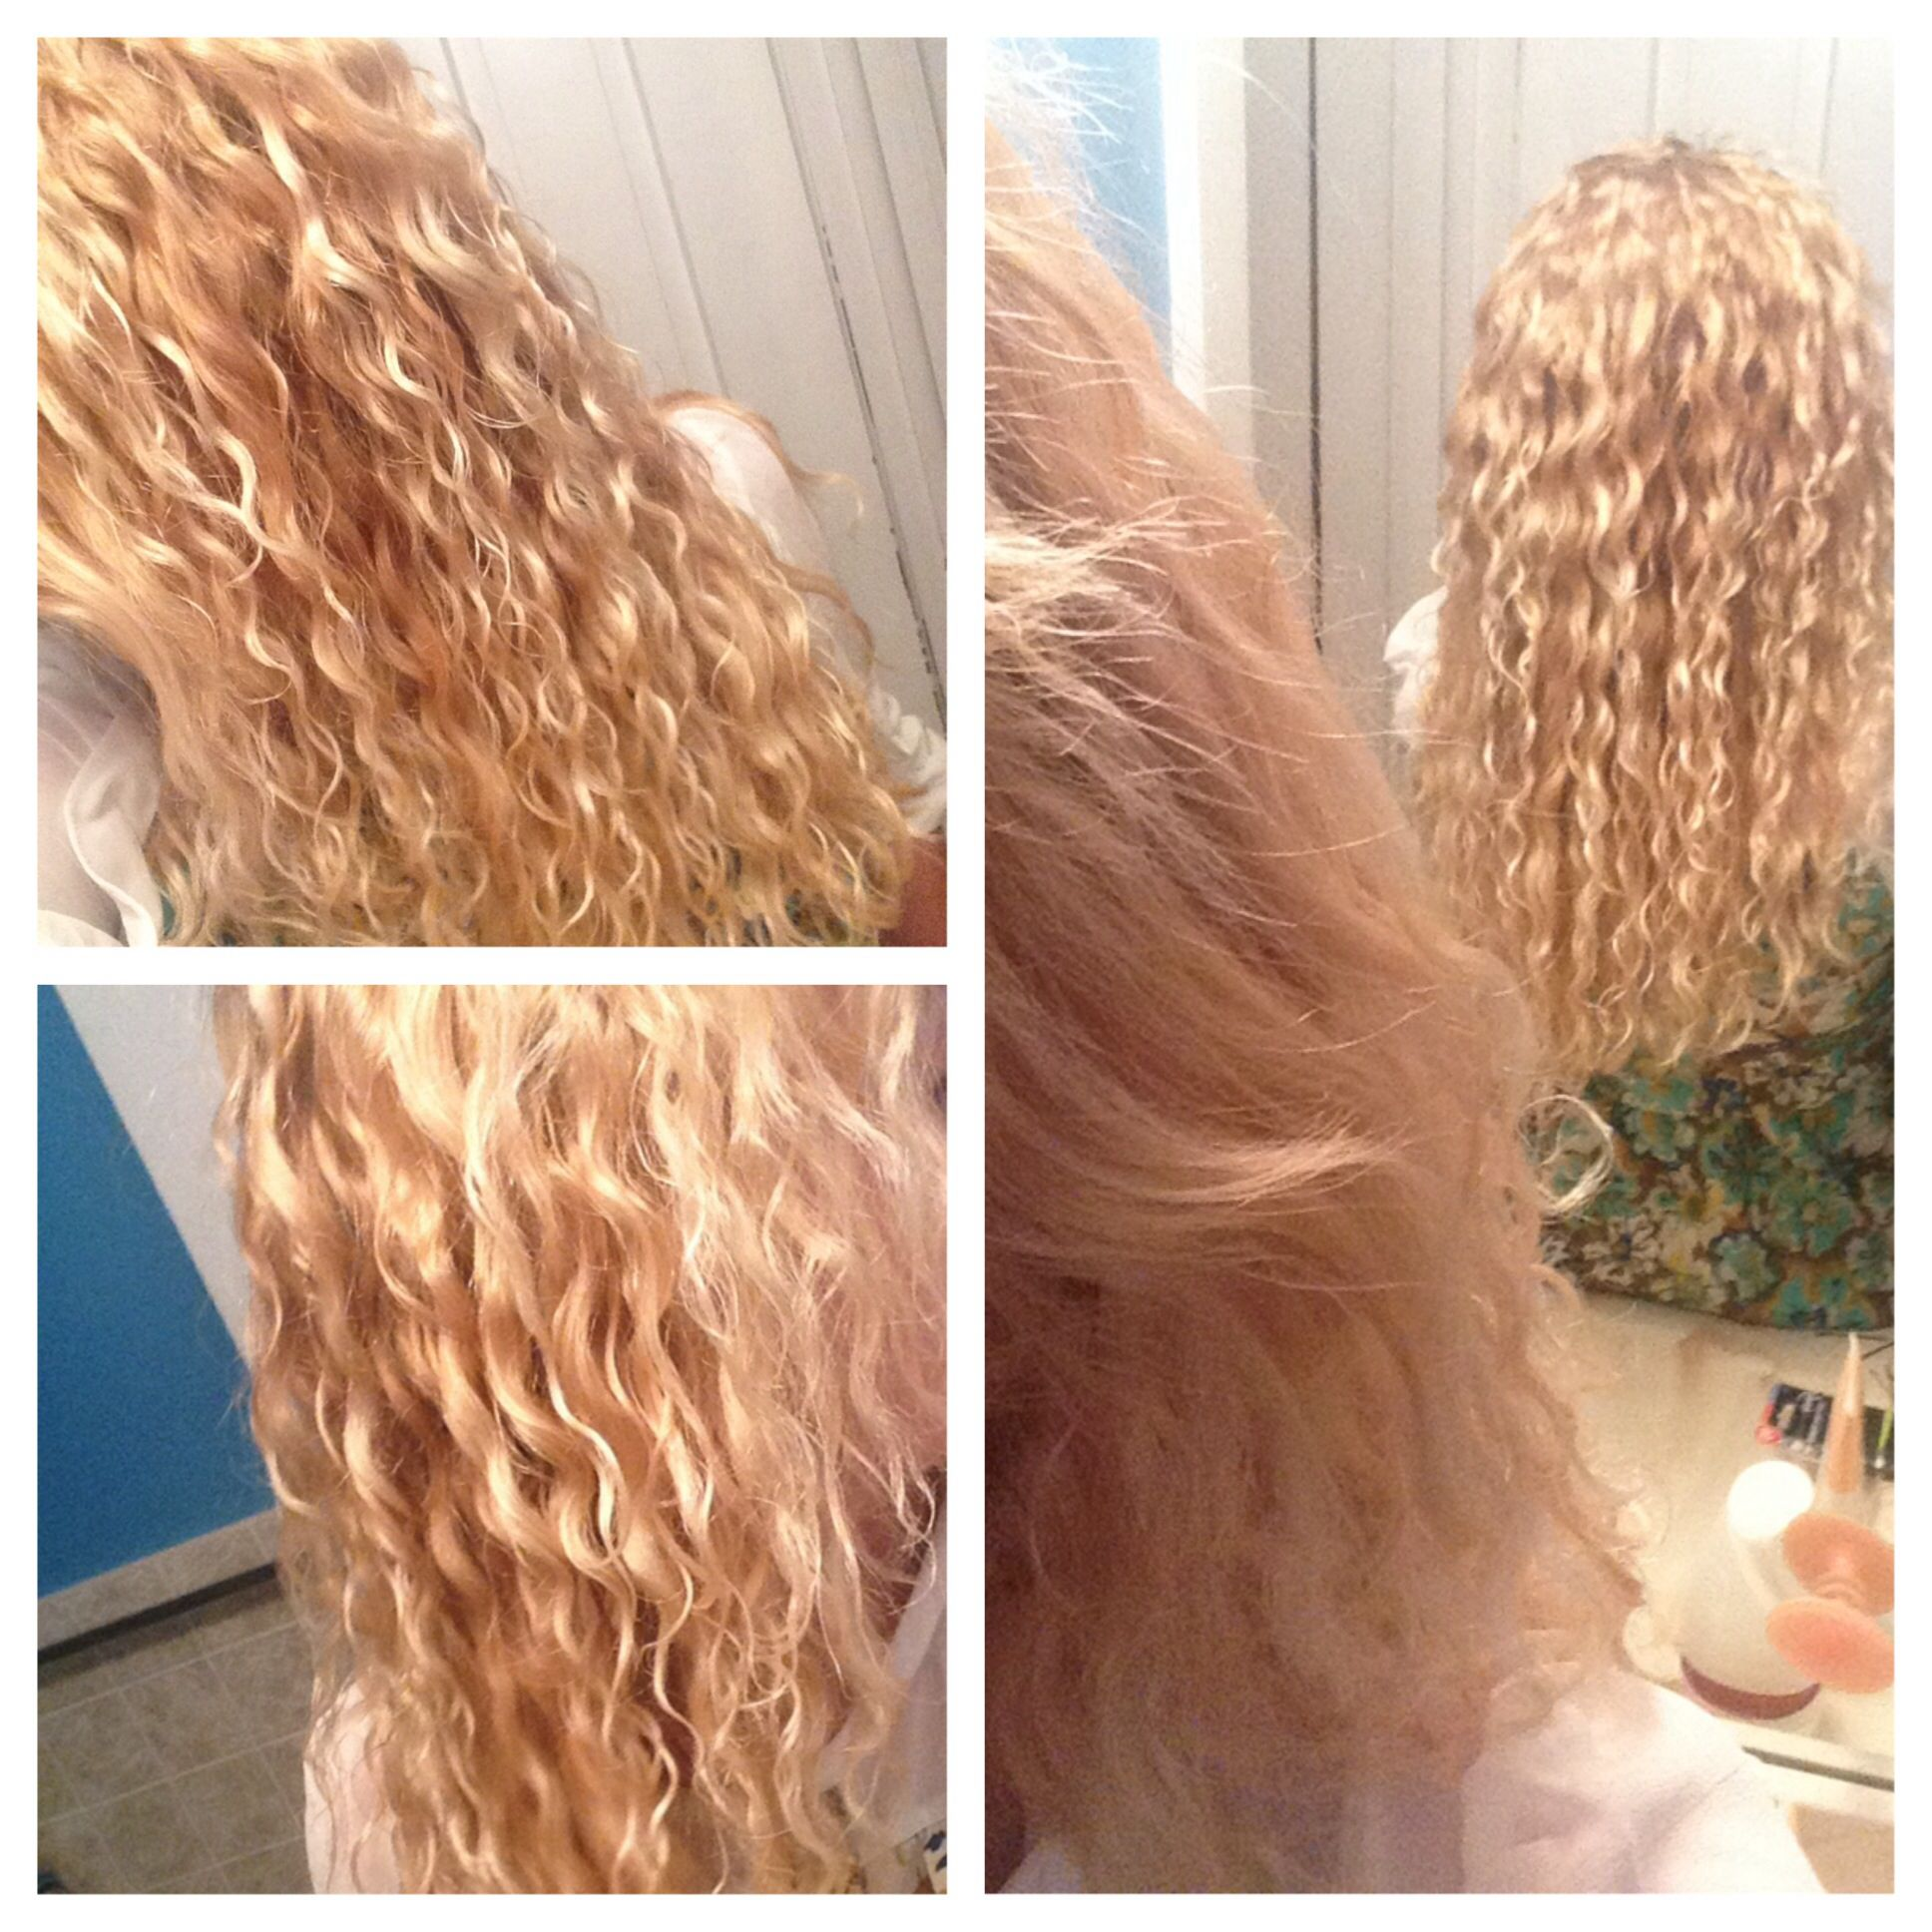 Body Wave Perm 2 Hours After This Should Calm Down And Be Less Poofy In A Week Or So I Hope Ramen Noodles No Noodle Hair Permanent Curls Body Wave Perm